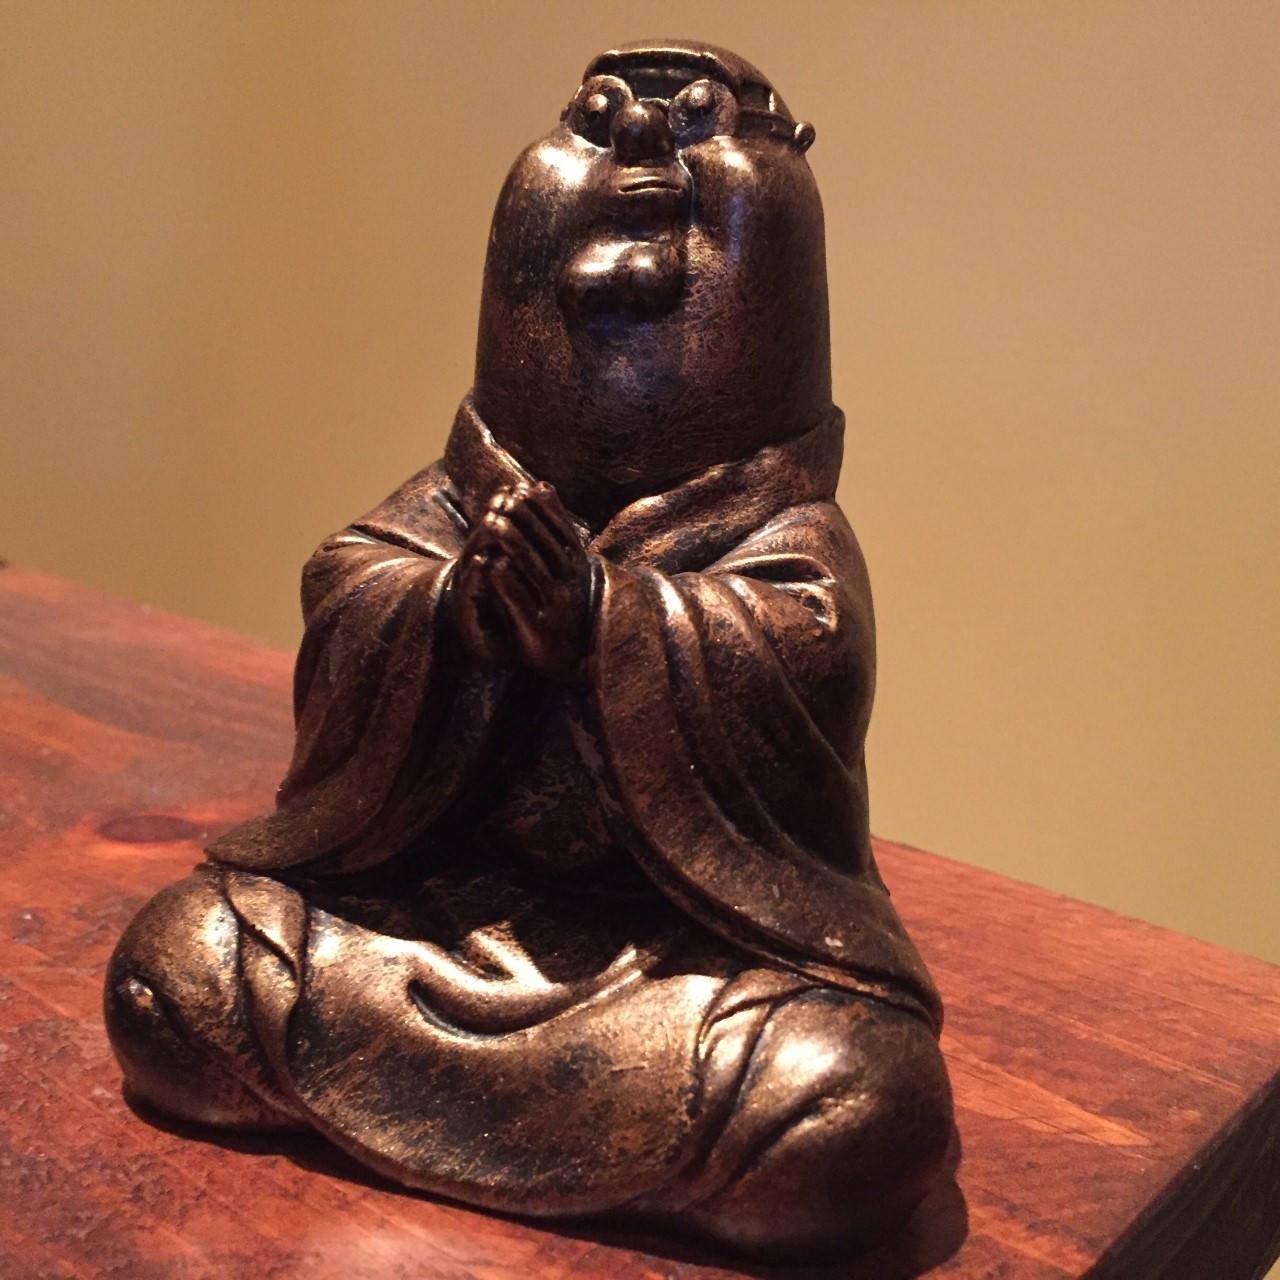 Bronze Peter Griffin Buddha Family Guy  Statue original  Sculpt and cast Resin toy